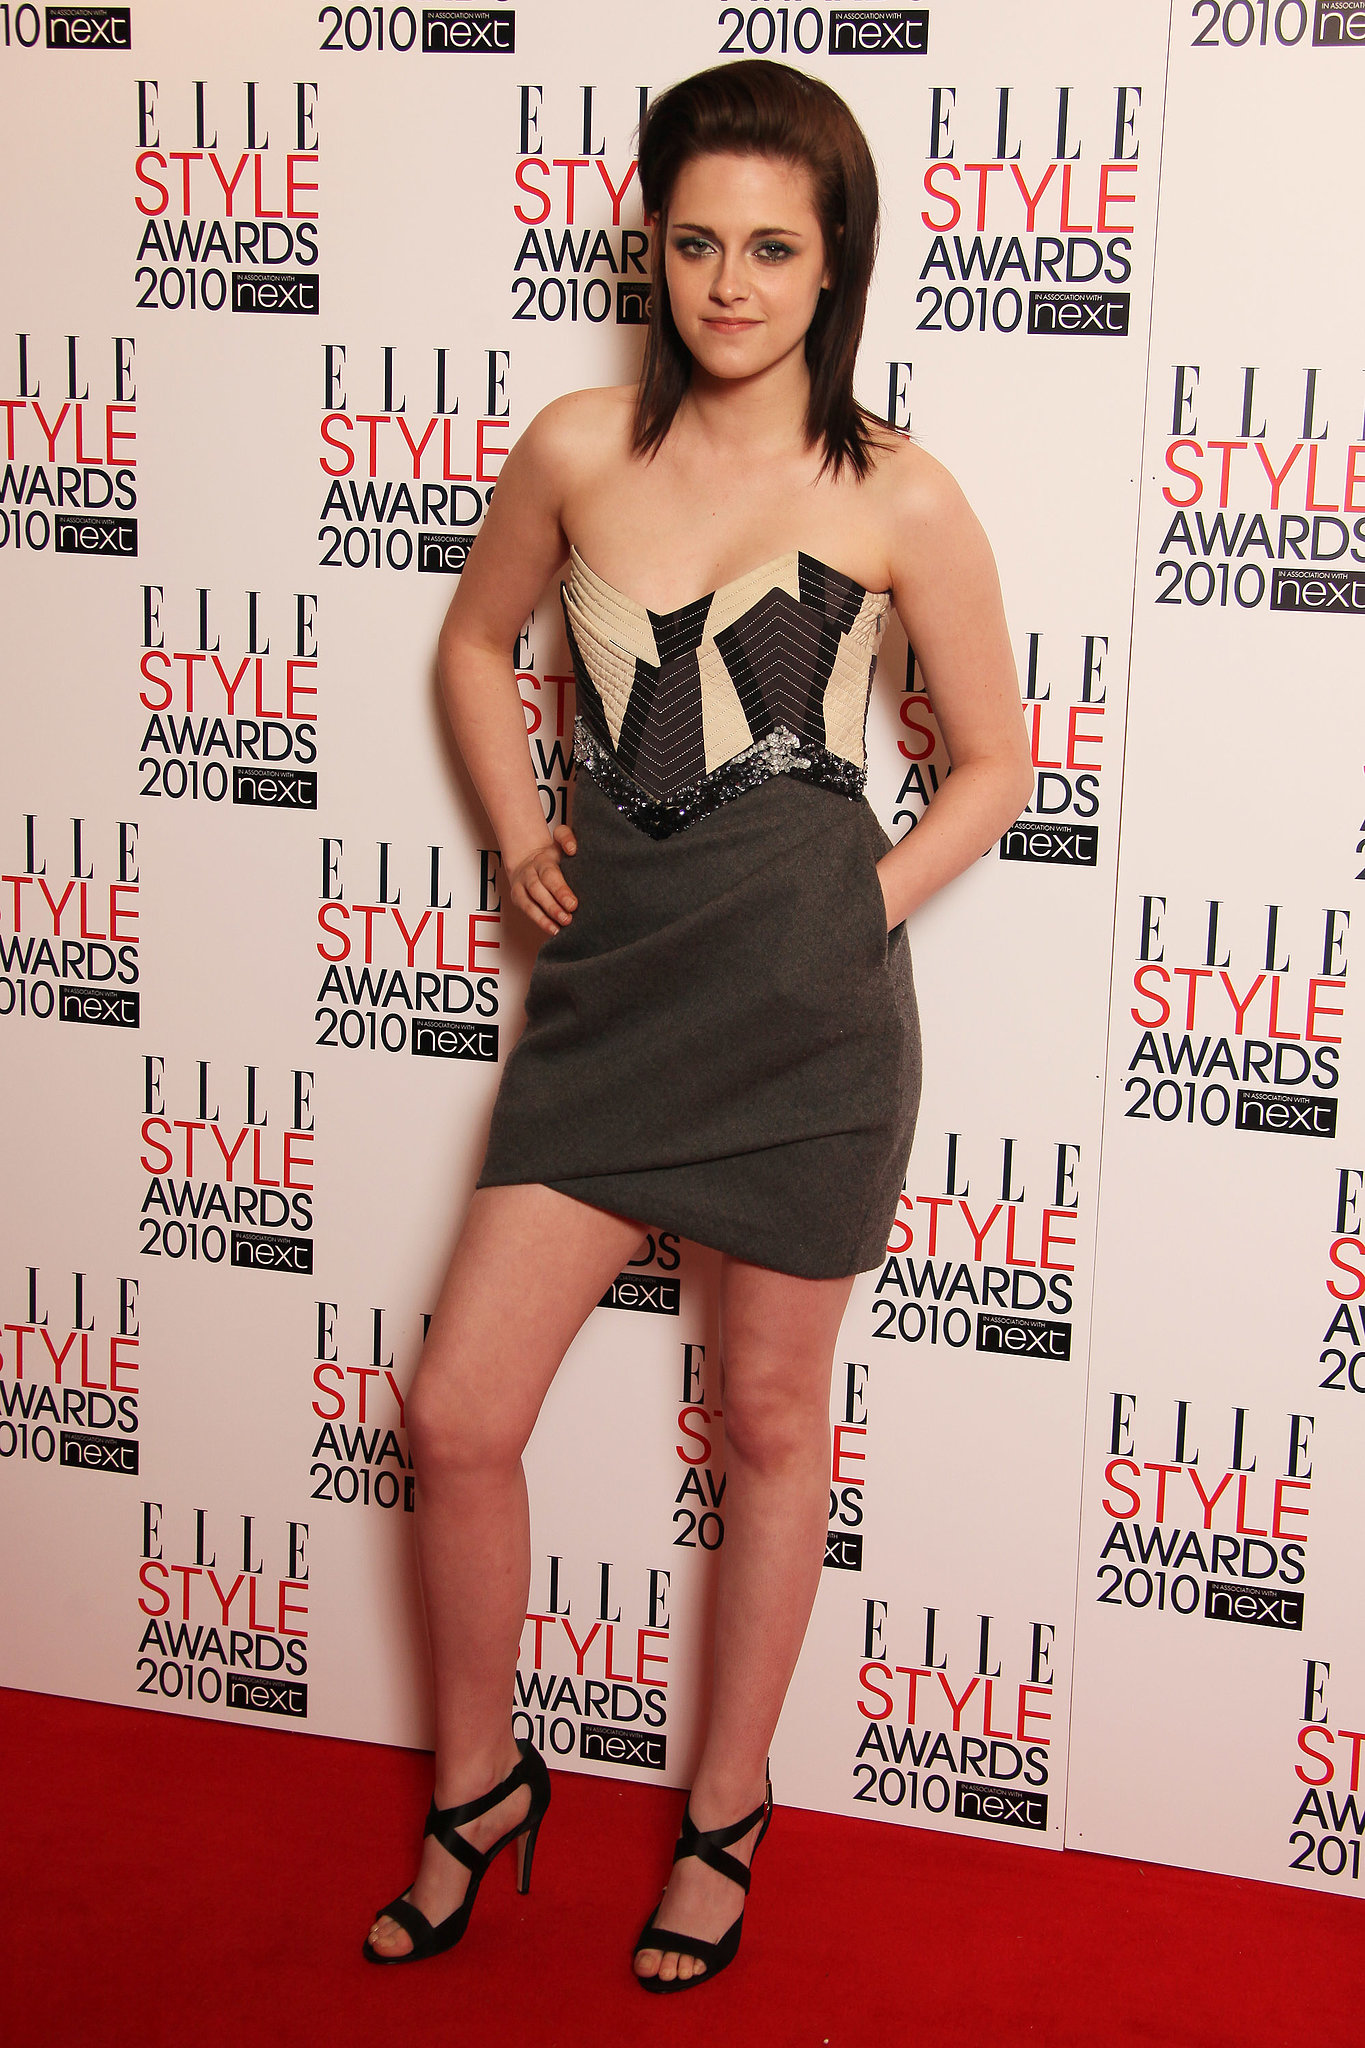 A crystal-encrusted bodice kept Stewart's Emilio Pucci dress from looking too casual for Elle's 2010 Style Awards.